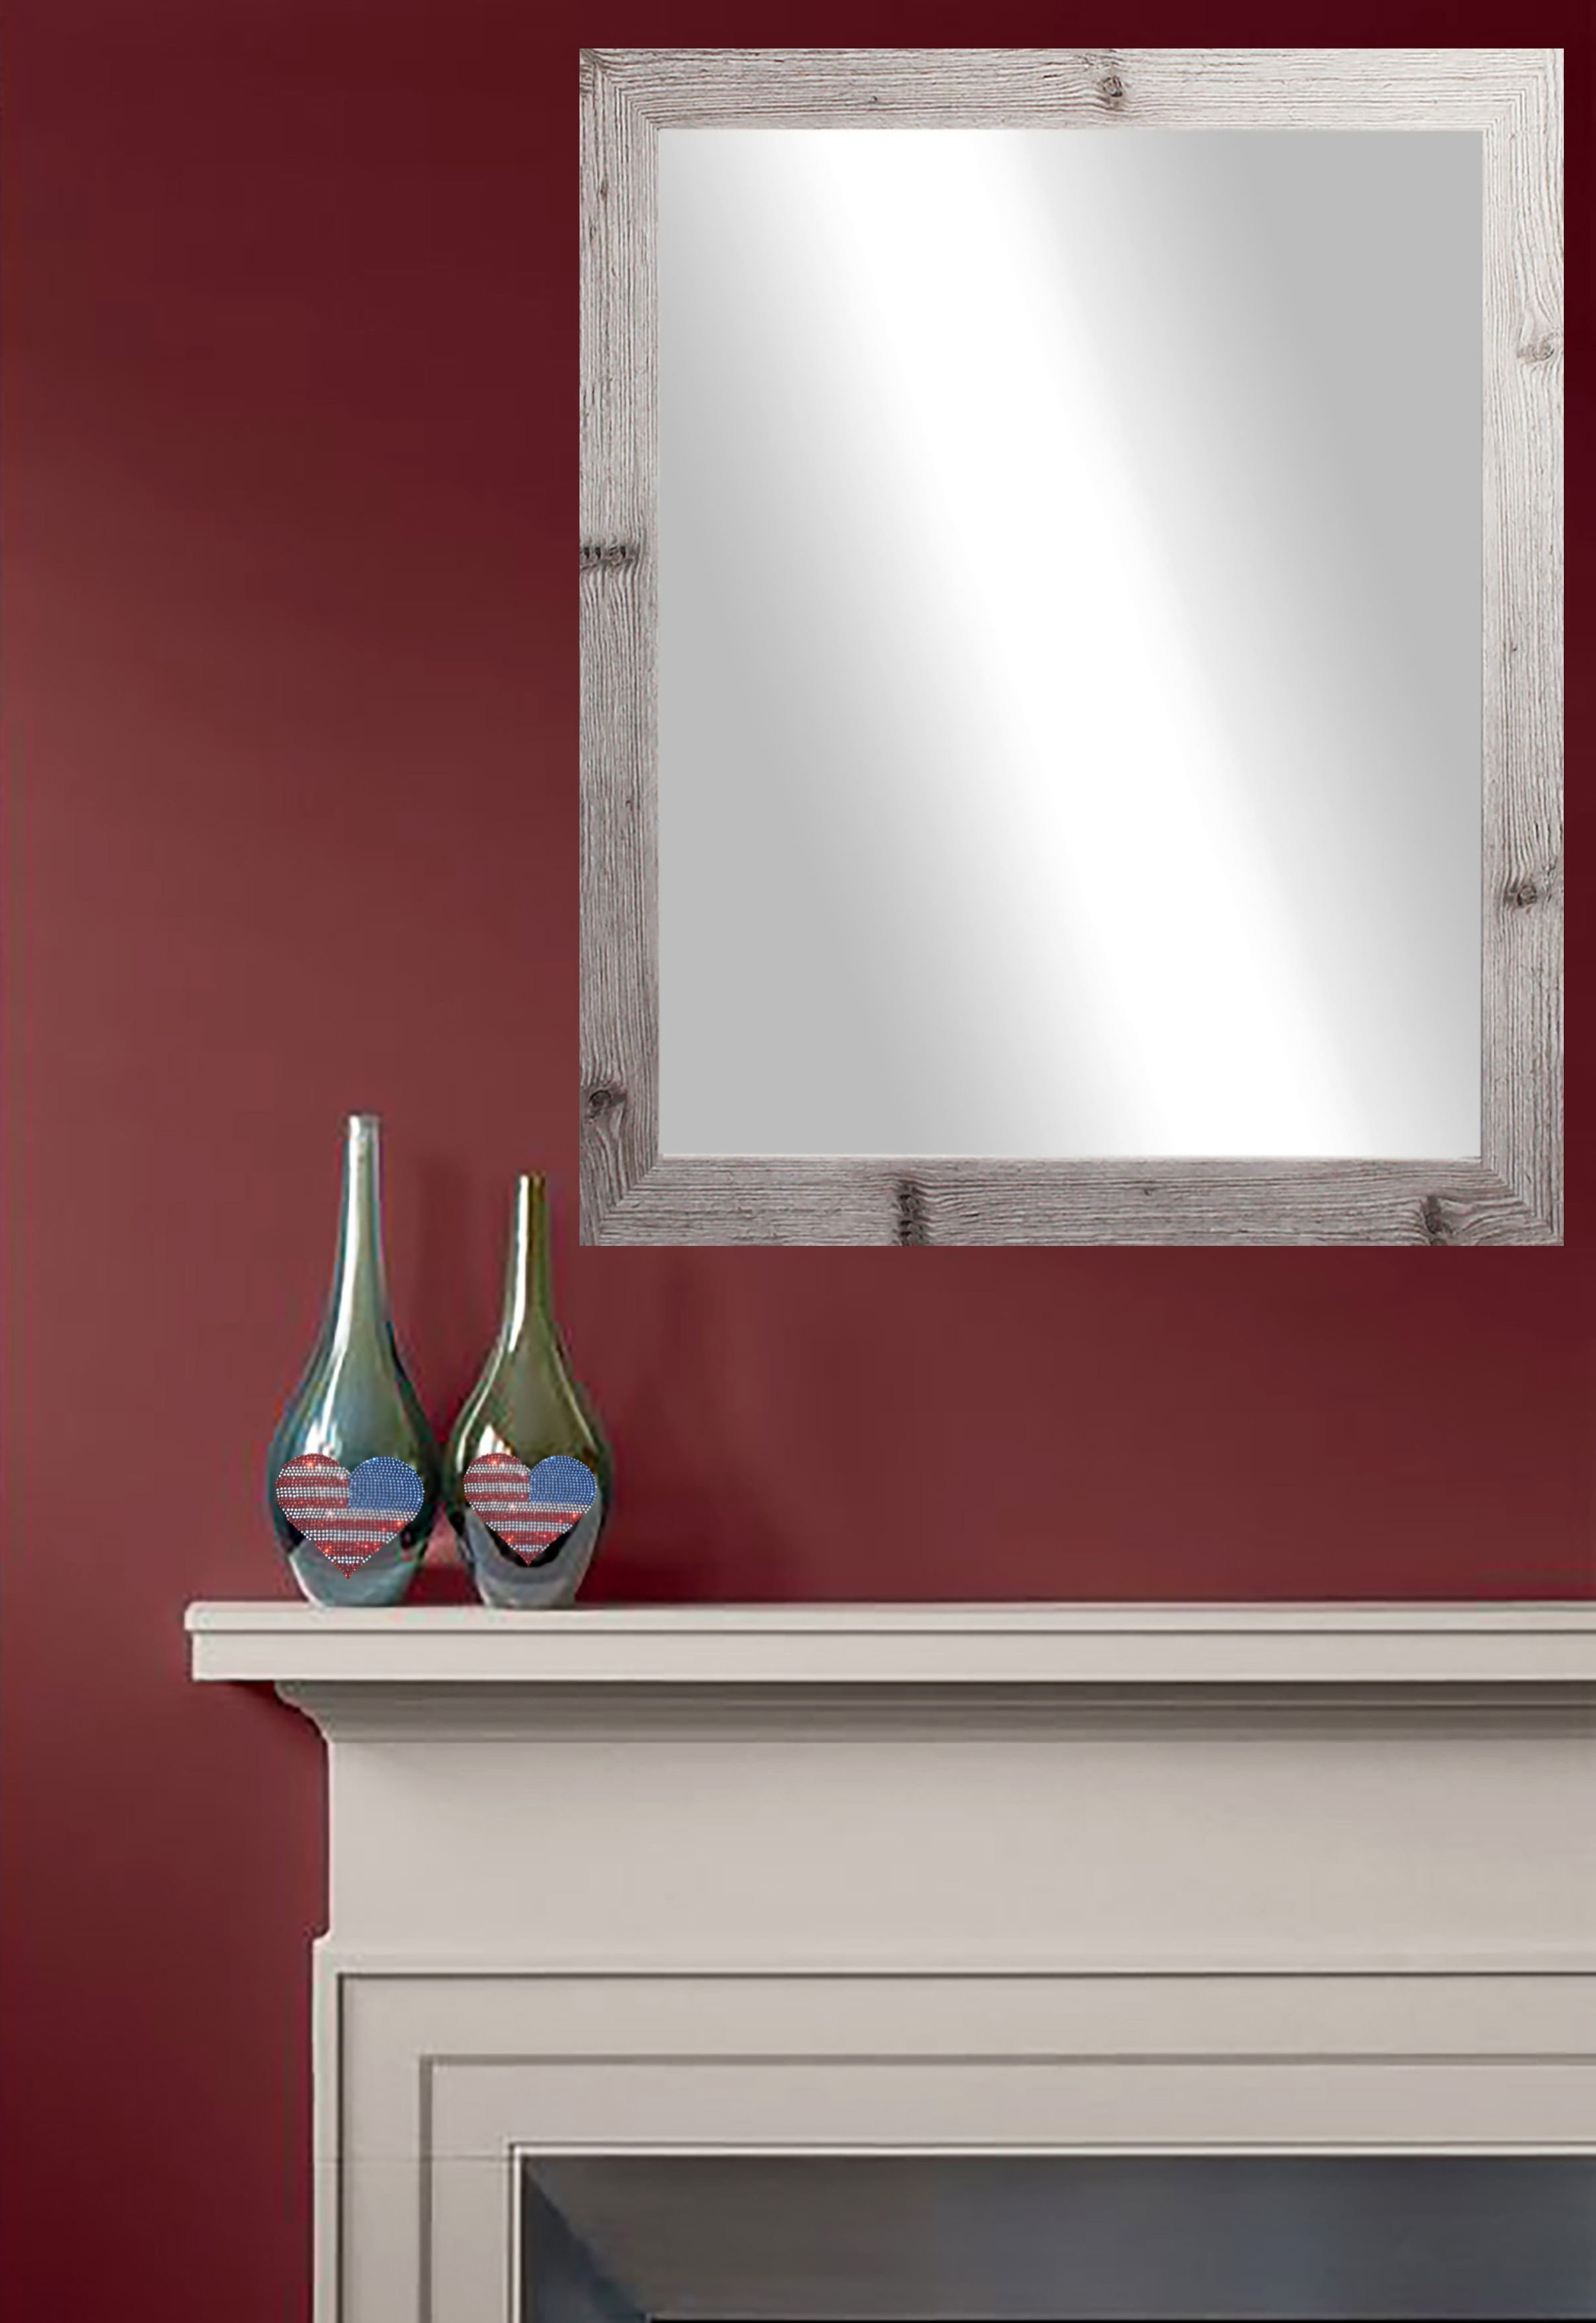 Modern & Contemporary Beveled Overmantel Mirrors Inside Well Liked Laurel Foundry Modern & Contemporary Accent Mirror (View 11 of 20)